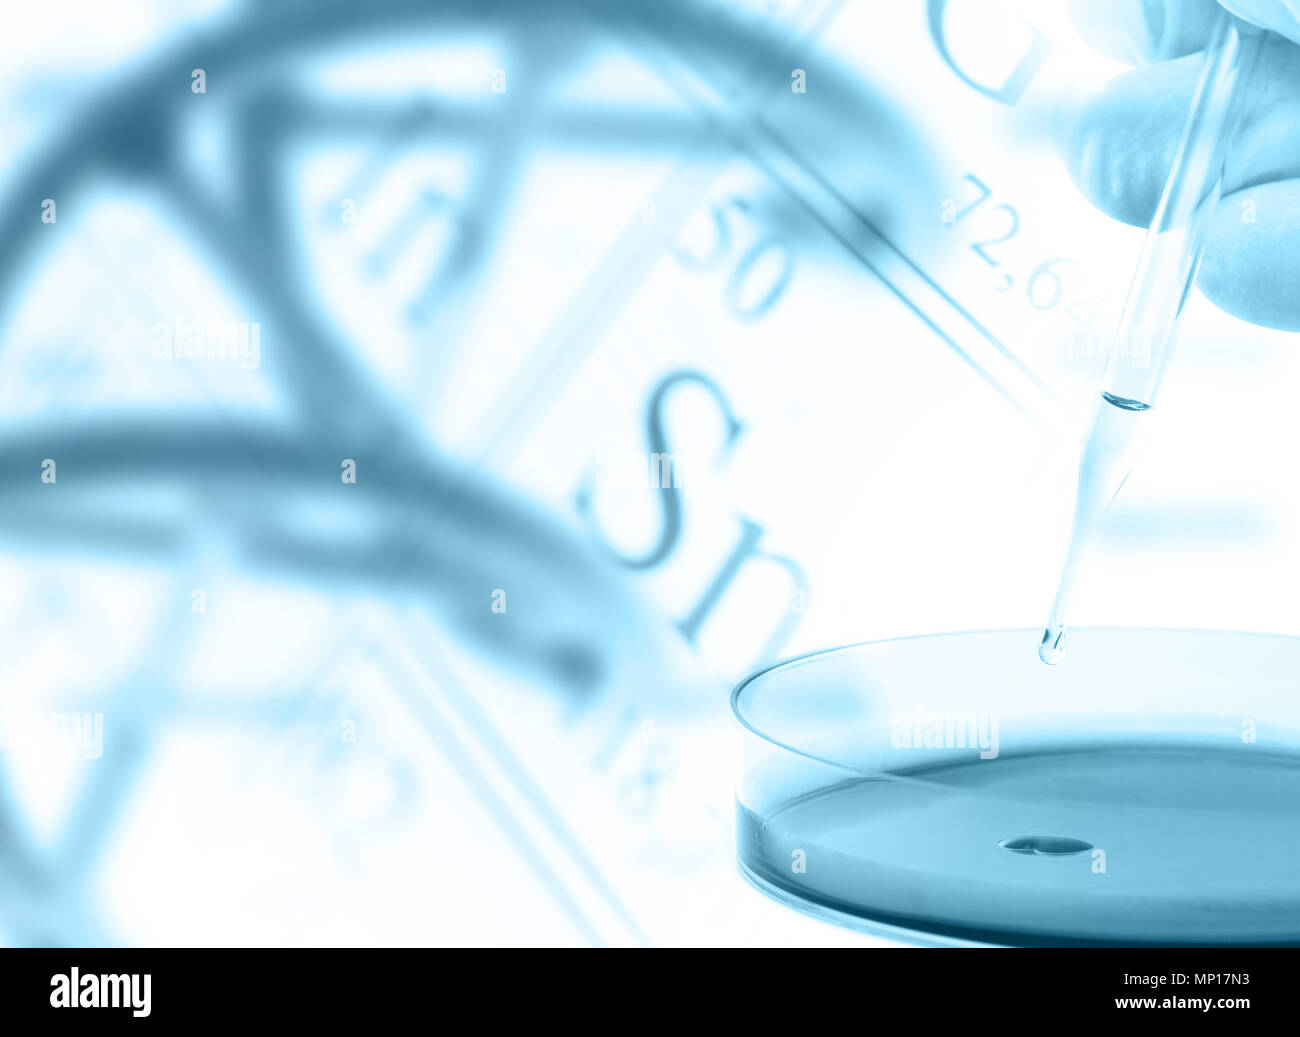 Researcher with petri dish and dna model over periodic table of the researcher with petri dish and dna model over periodic table of the elements research or science concept background urtaz Choice Image